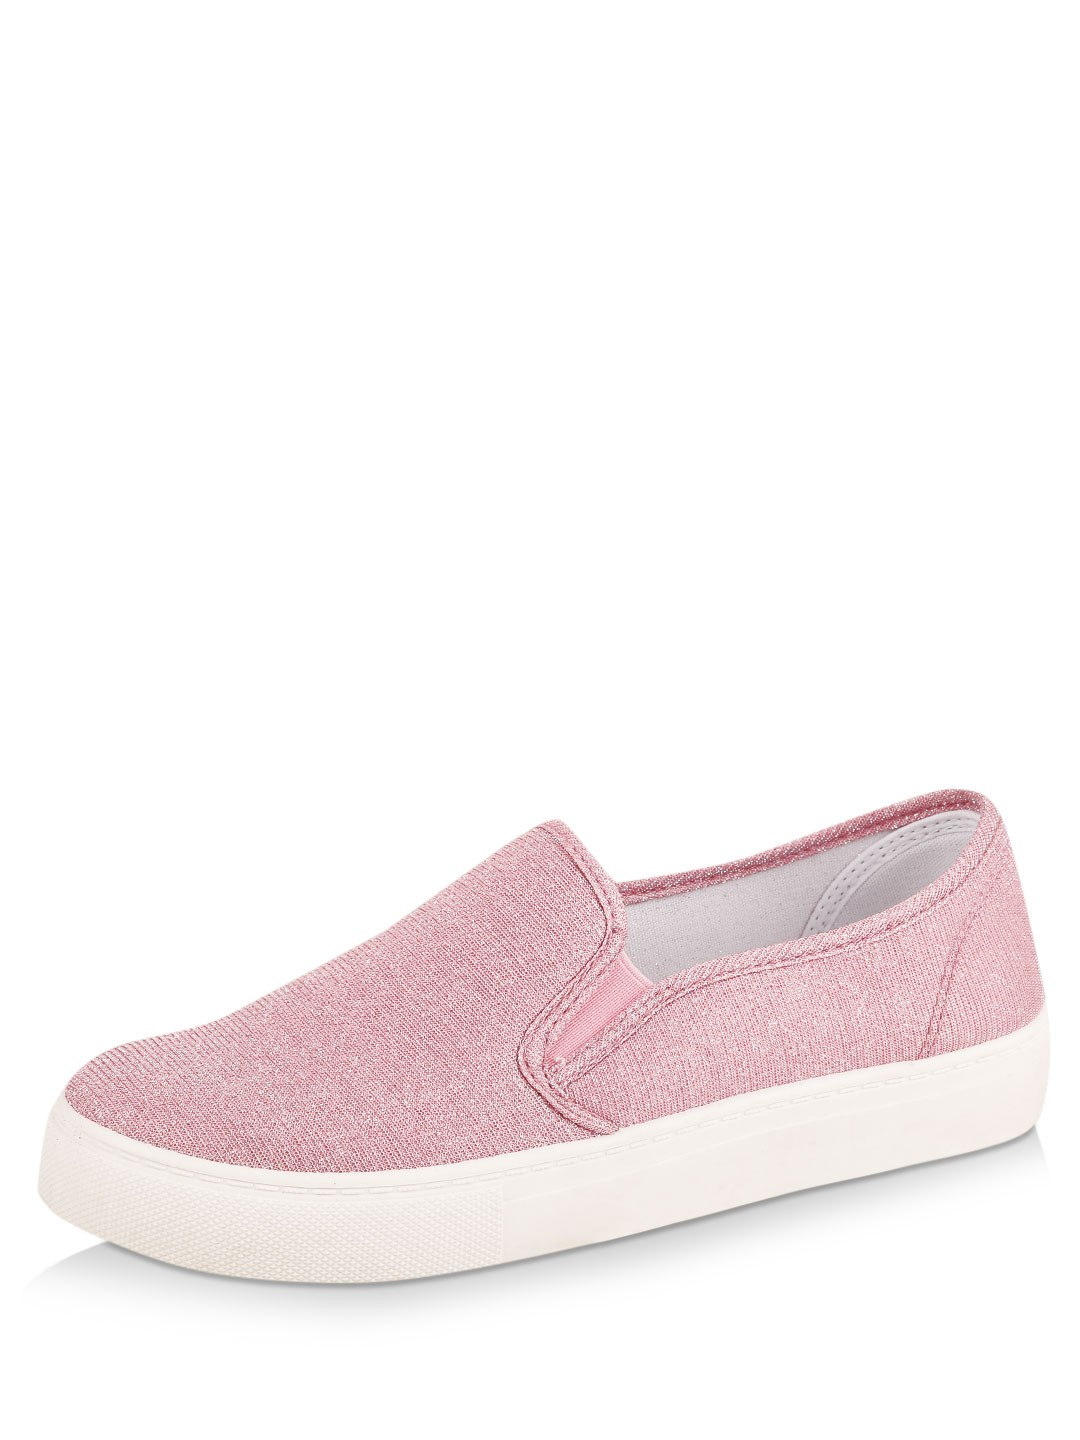 buy no doubt glitter skater shoes for s pink